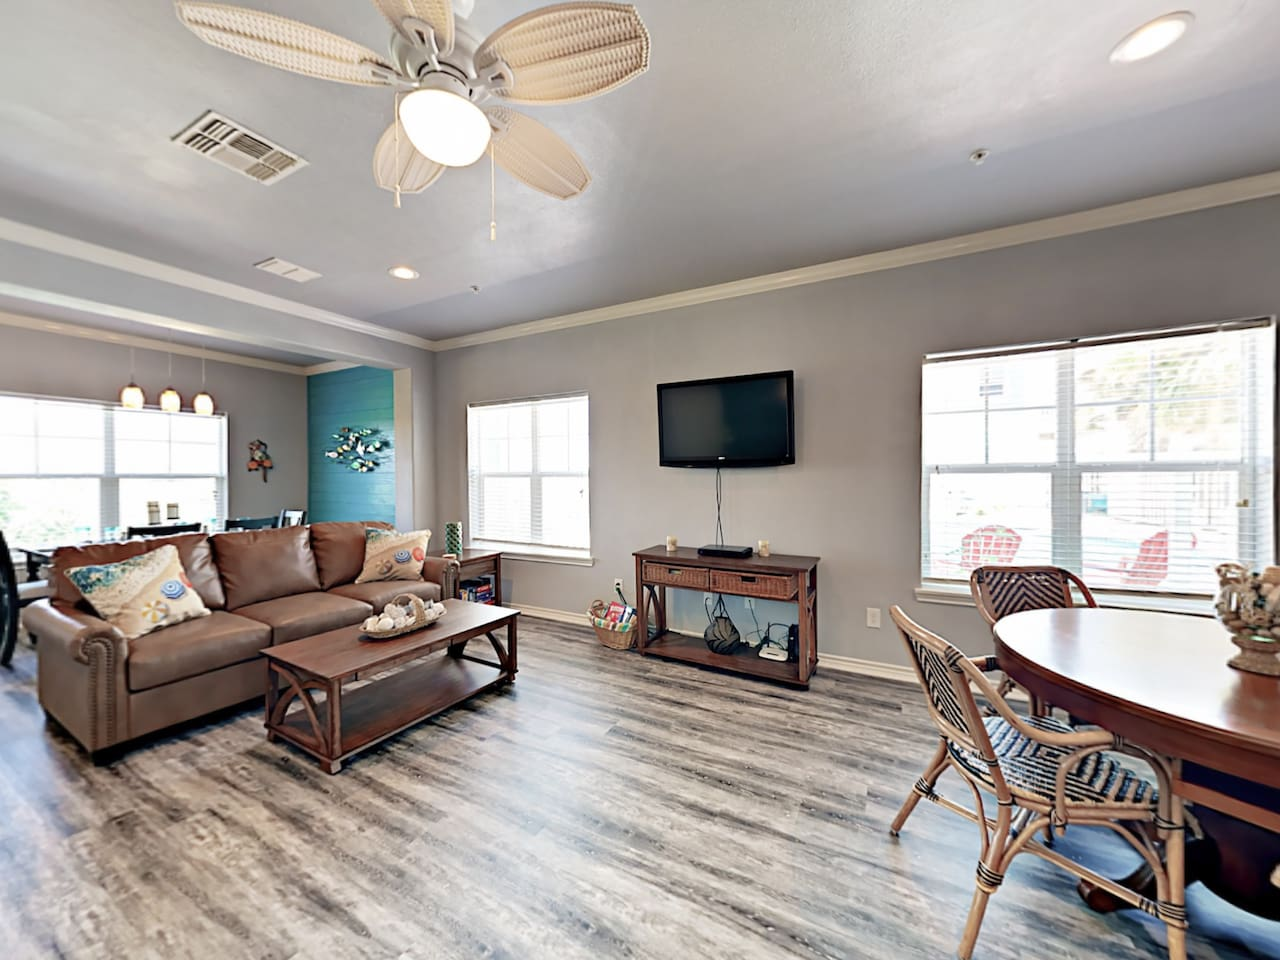 Welcome to Port Aransas! This modern townhouse is professionally managed by TurnKey Vacation Rentals.